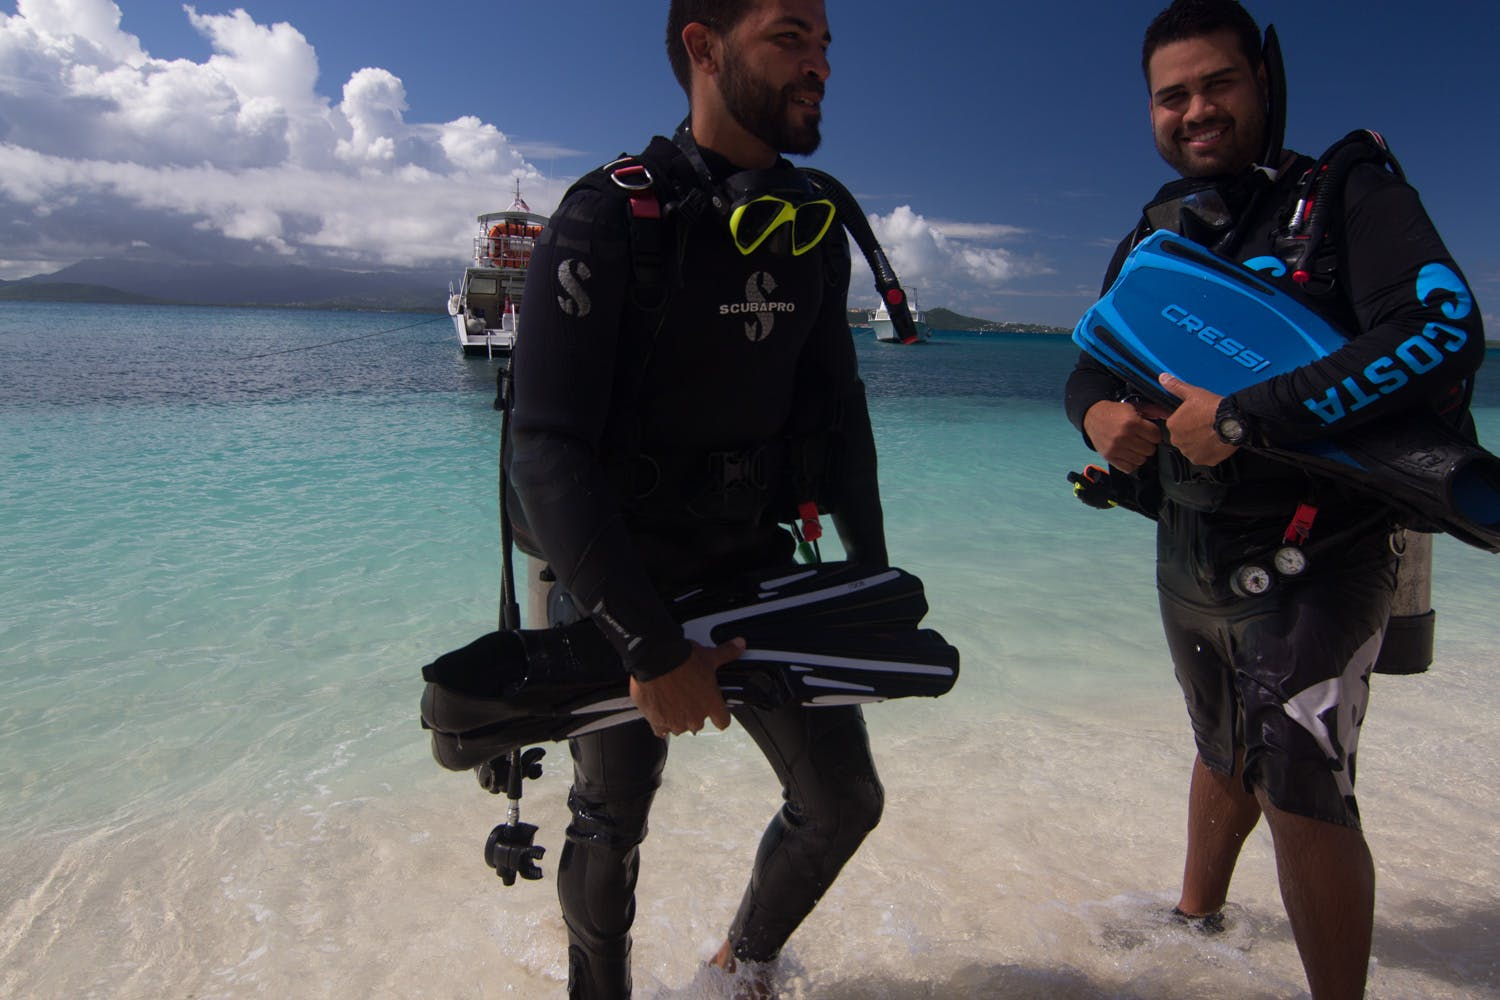 Scuba divers with equipment emerging from the beach